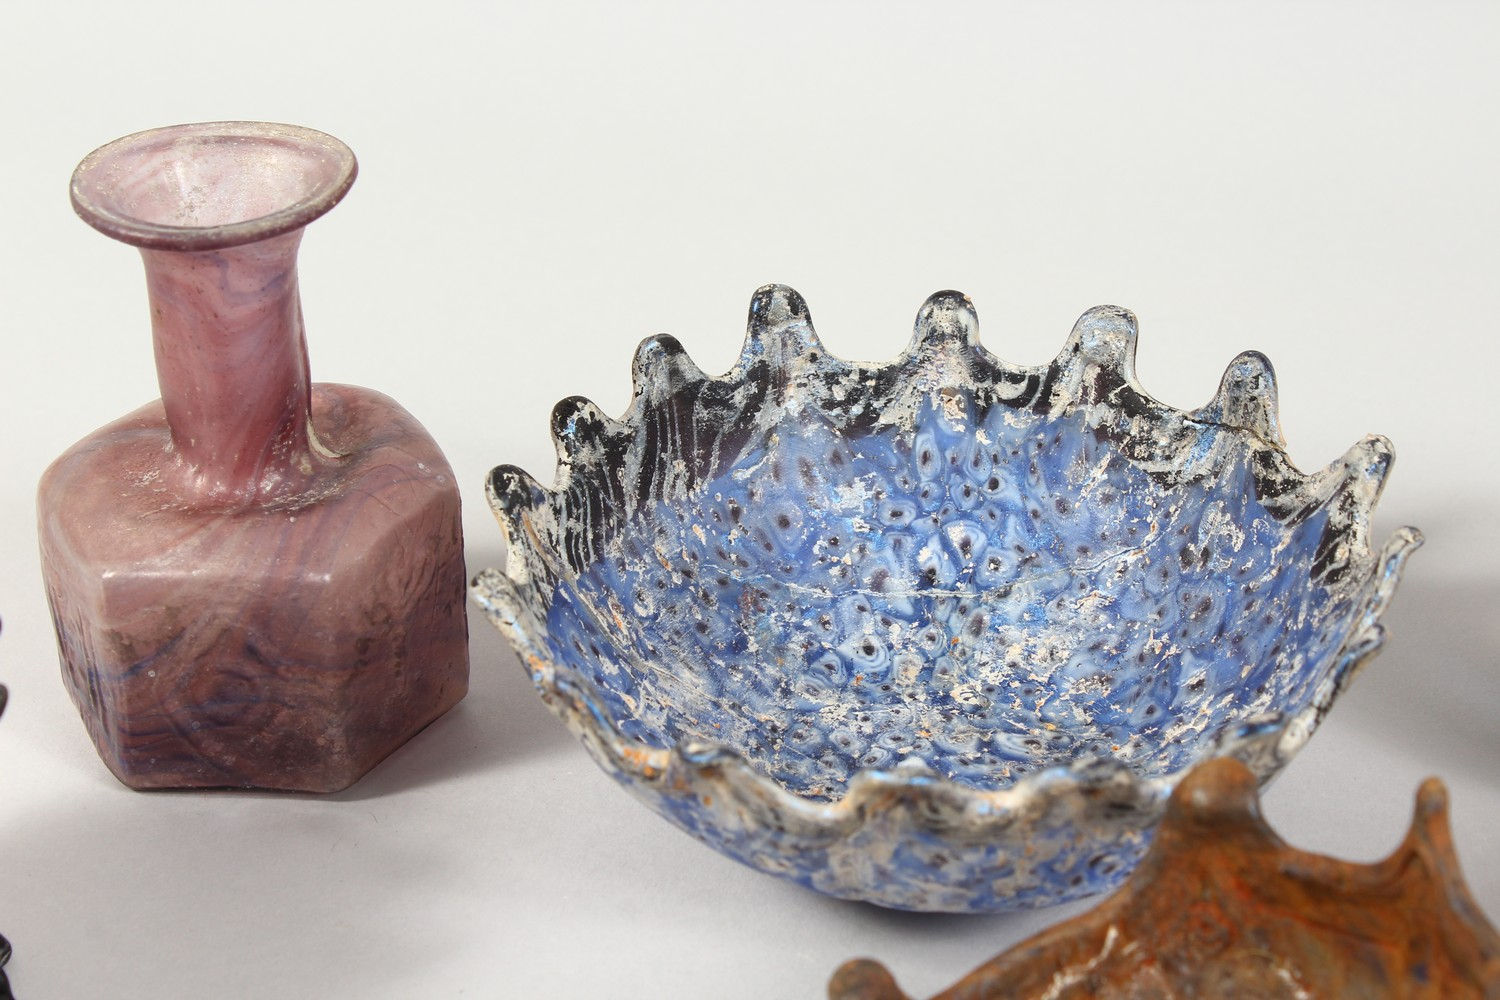 Lot 1294 - A COLLECTION OF ROMAN GLASS BOWLS AND JARS, models of birds and animals and a tortoise shaped